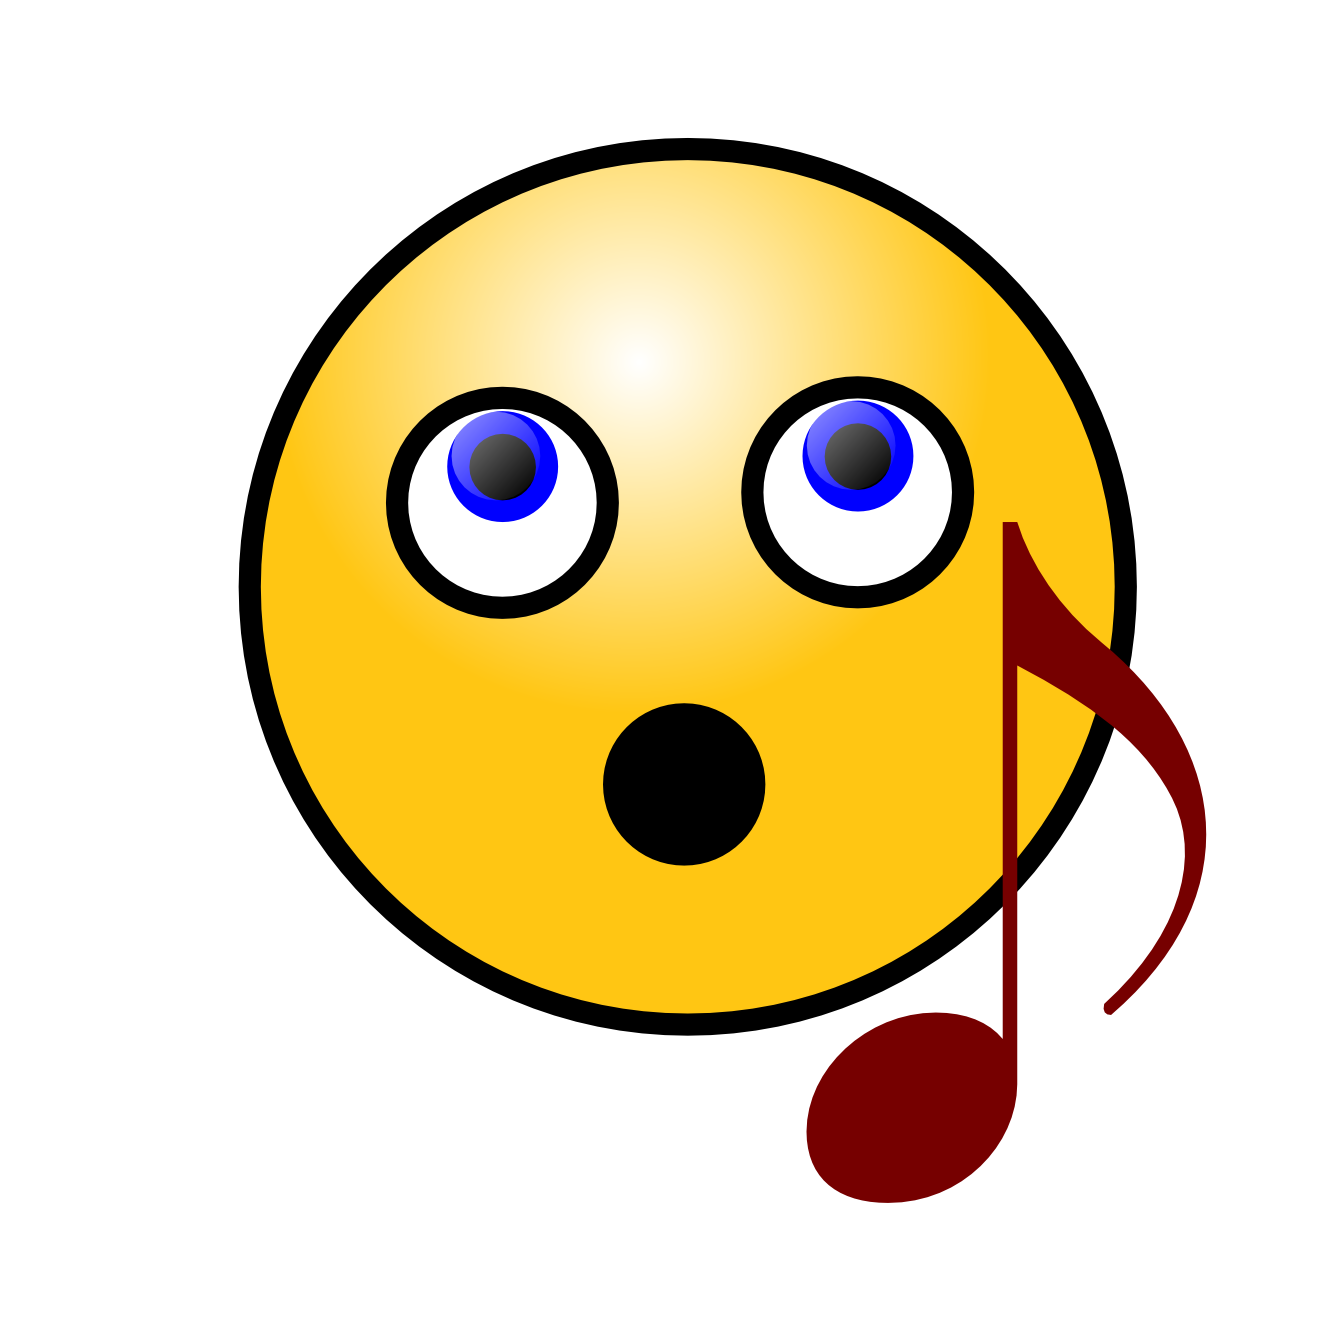 Singing Smiley Face SVG - ClipArt Best - ClipArt Best